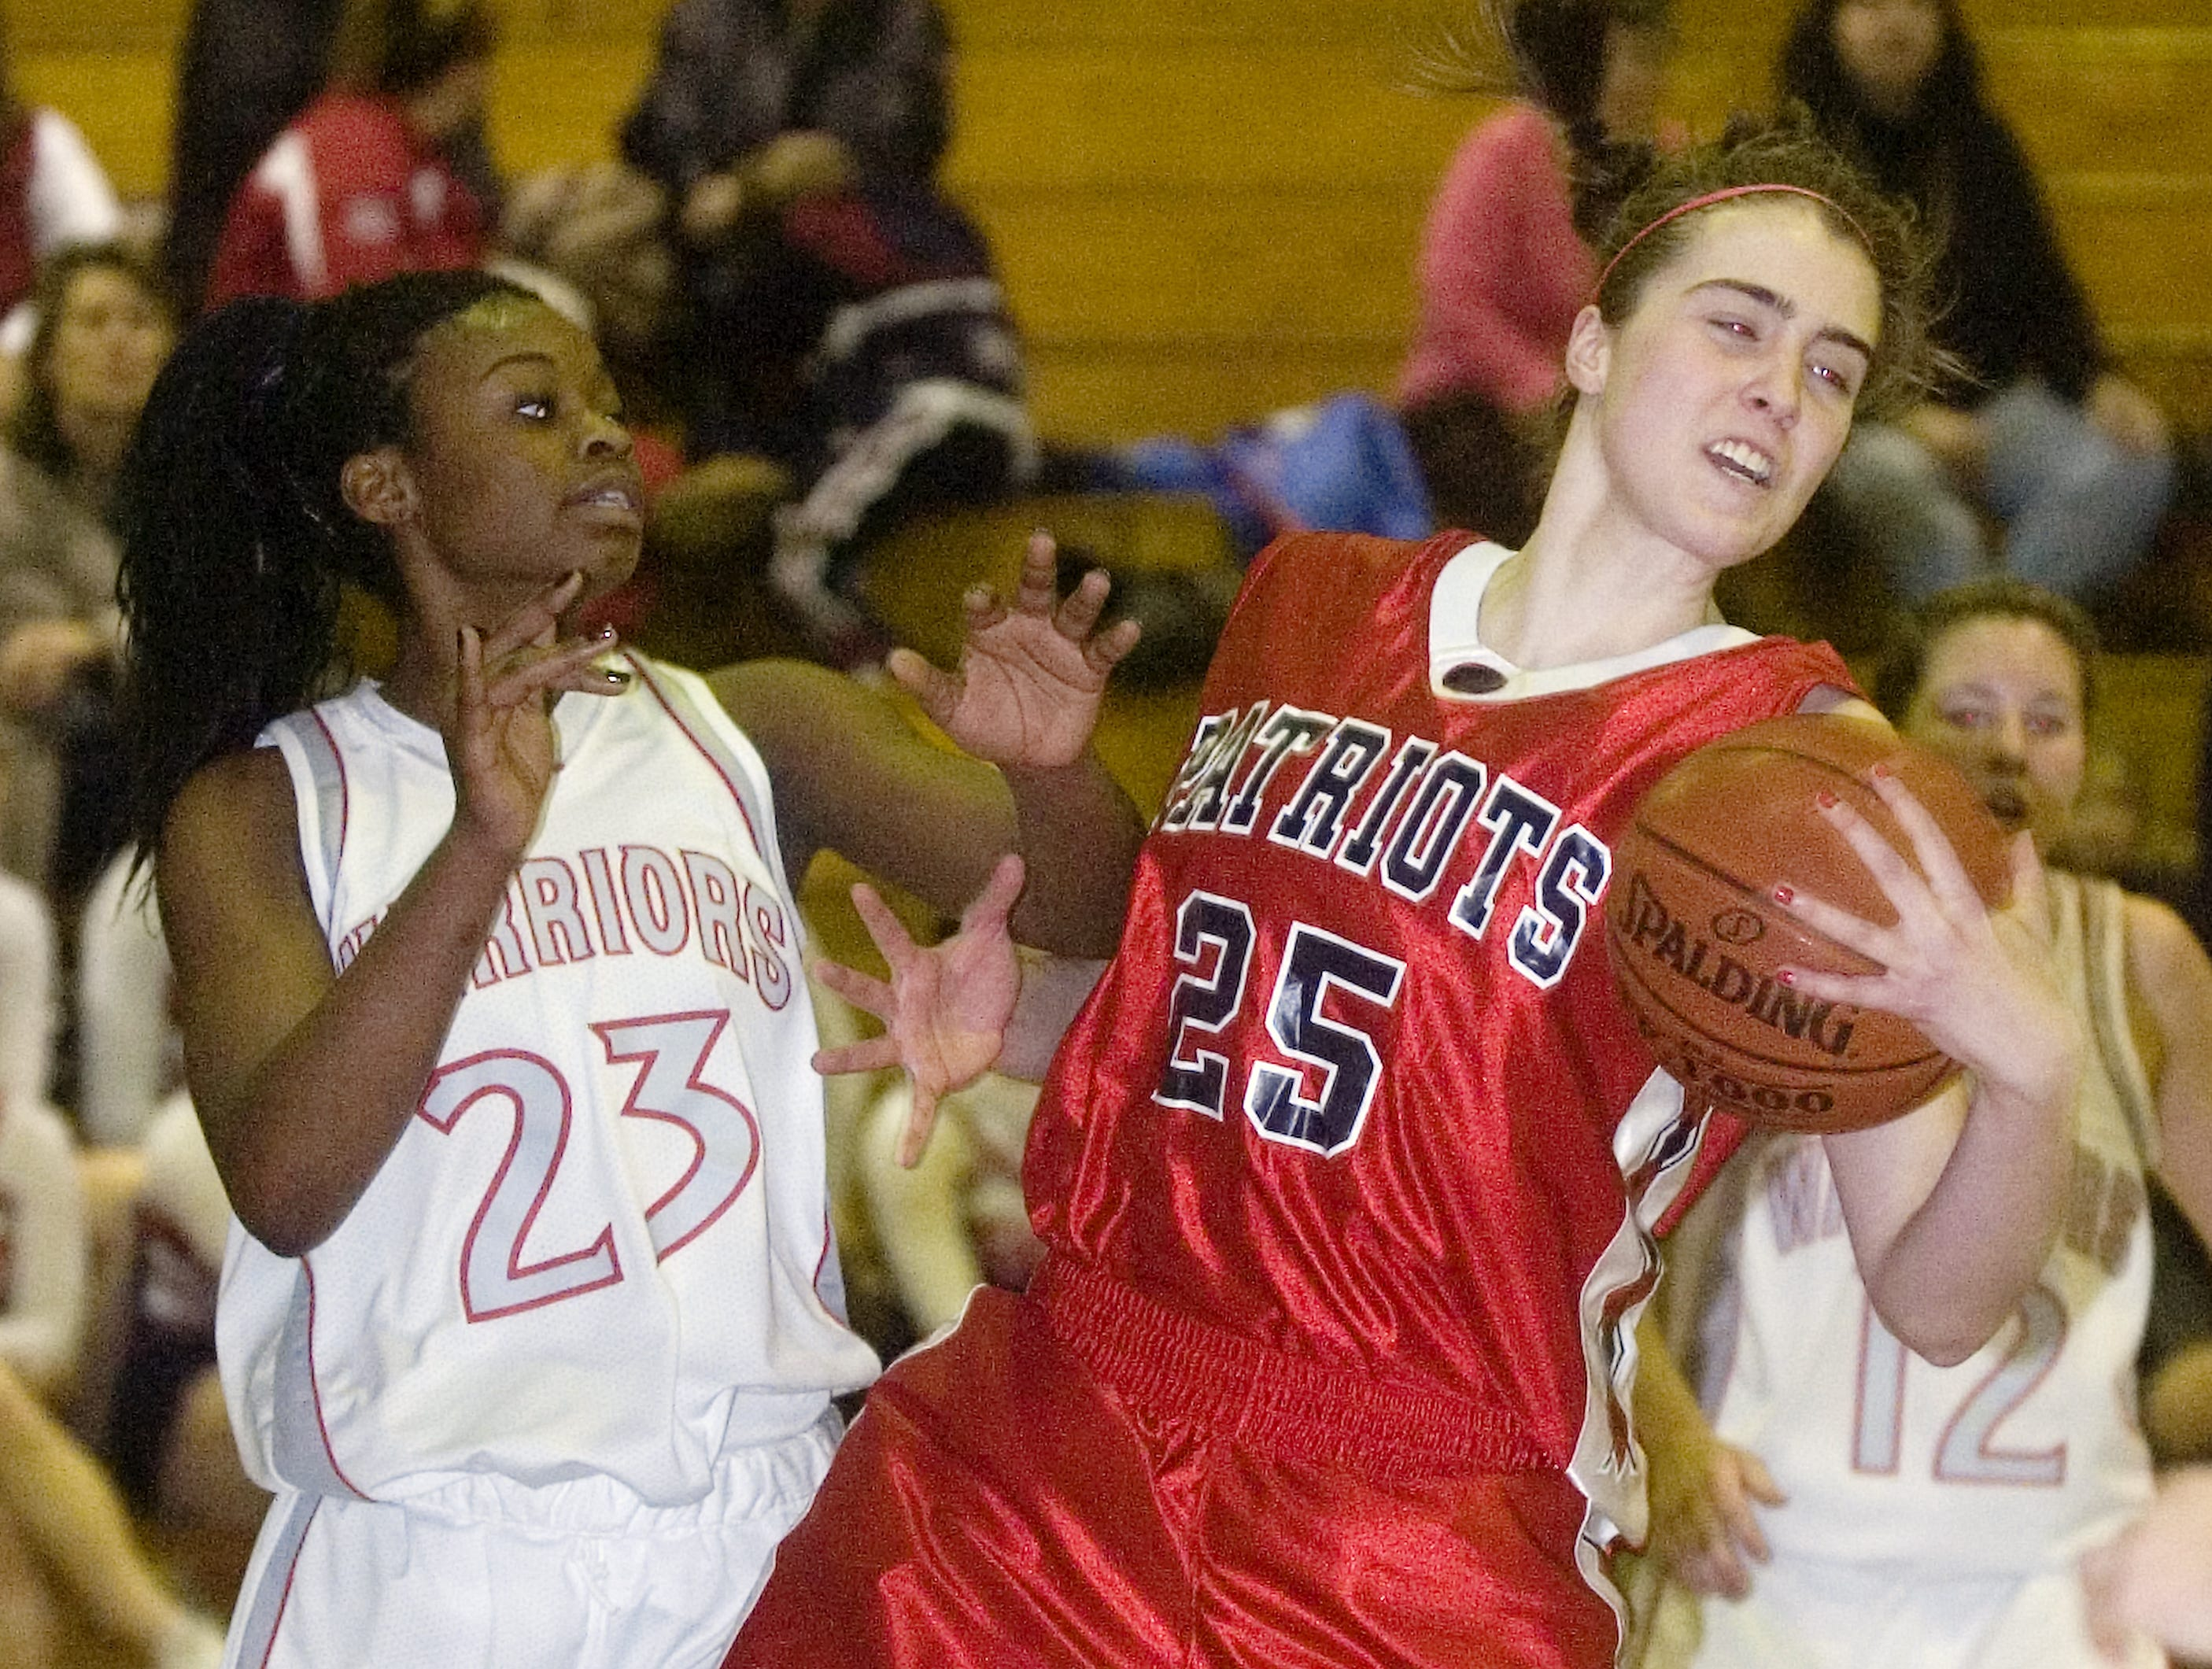 2010: Binghamton's Madison Ward, right, beats out Chenango Valley's Khaylah Moss to the rebound in the third quarter of Tuesday's game at Johnson City High School.